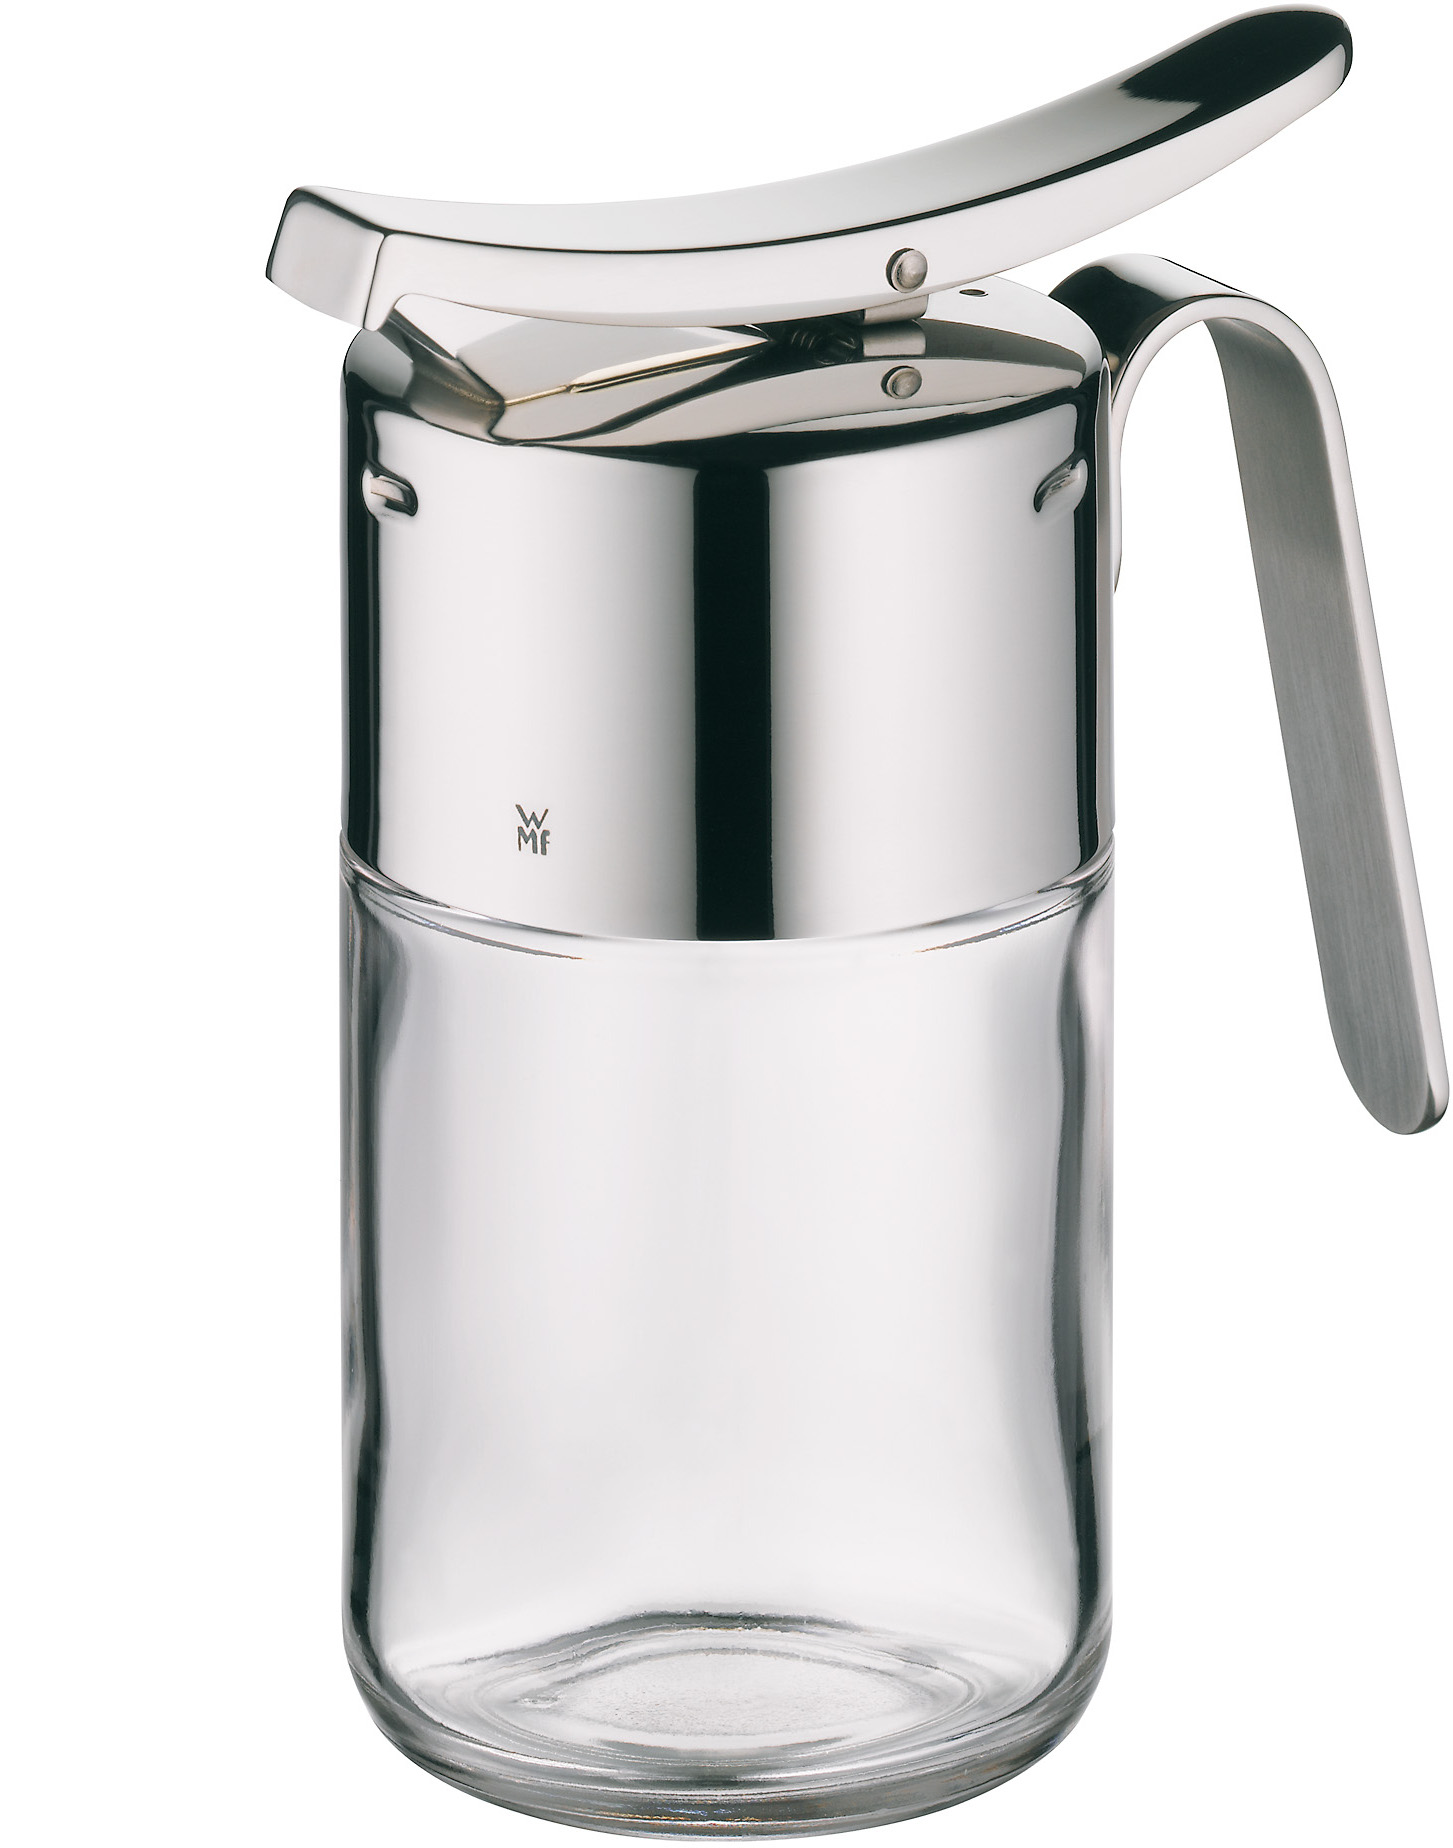 WMF 18/10 Stainless Steel and Glass Syrup Dispenser